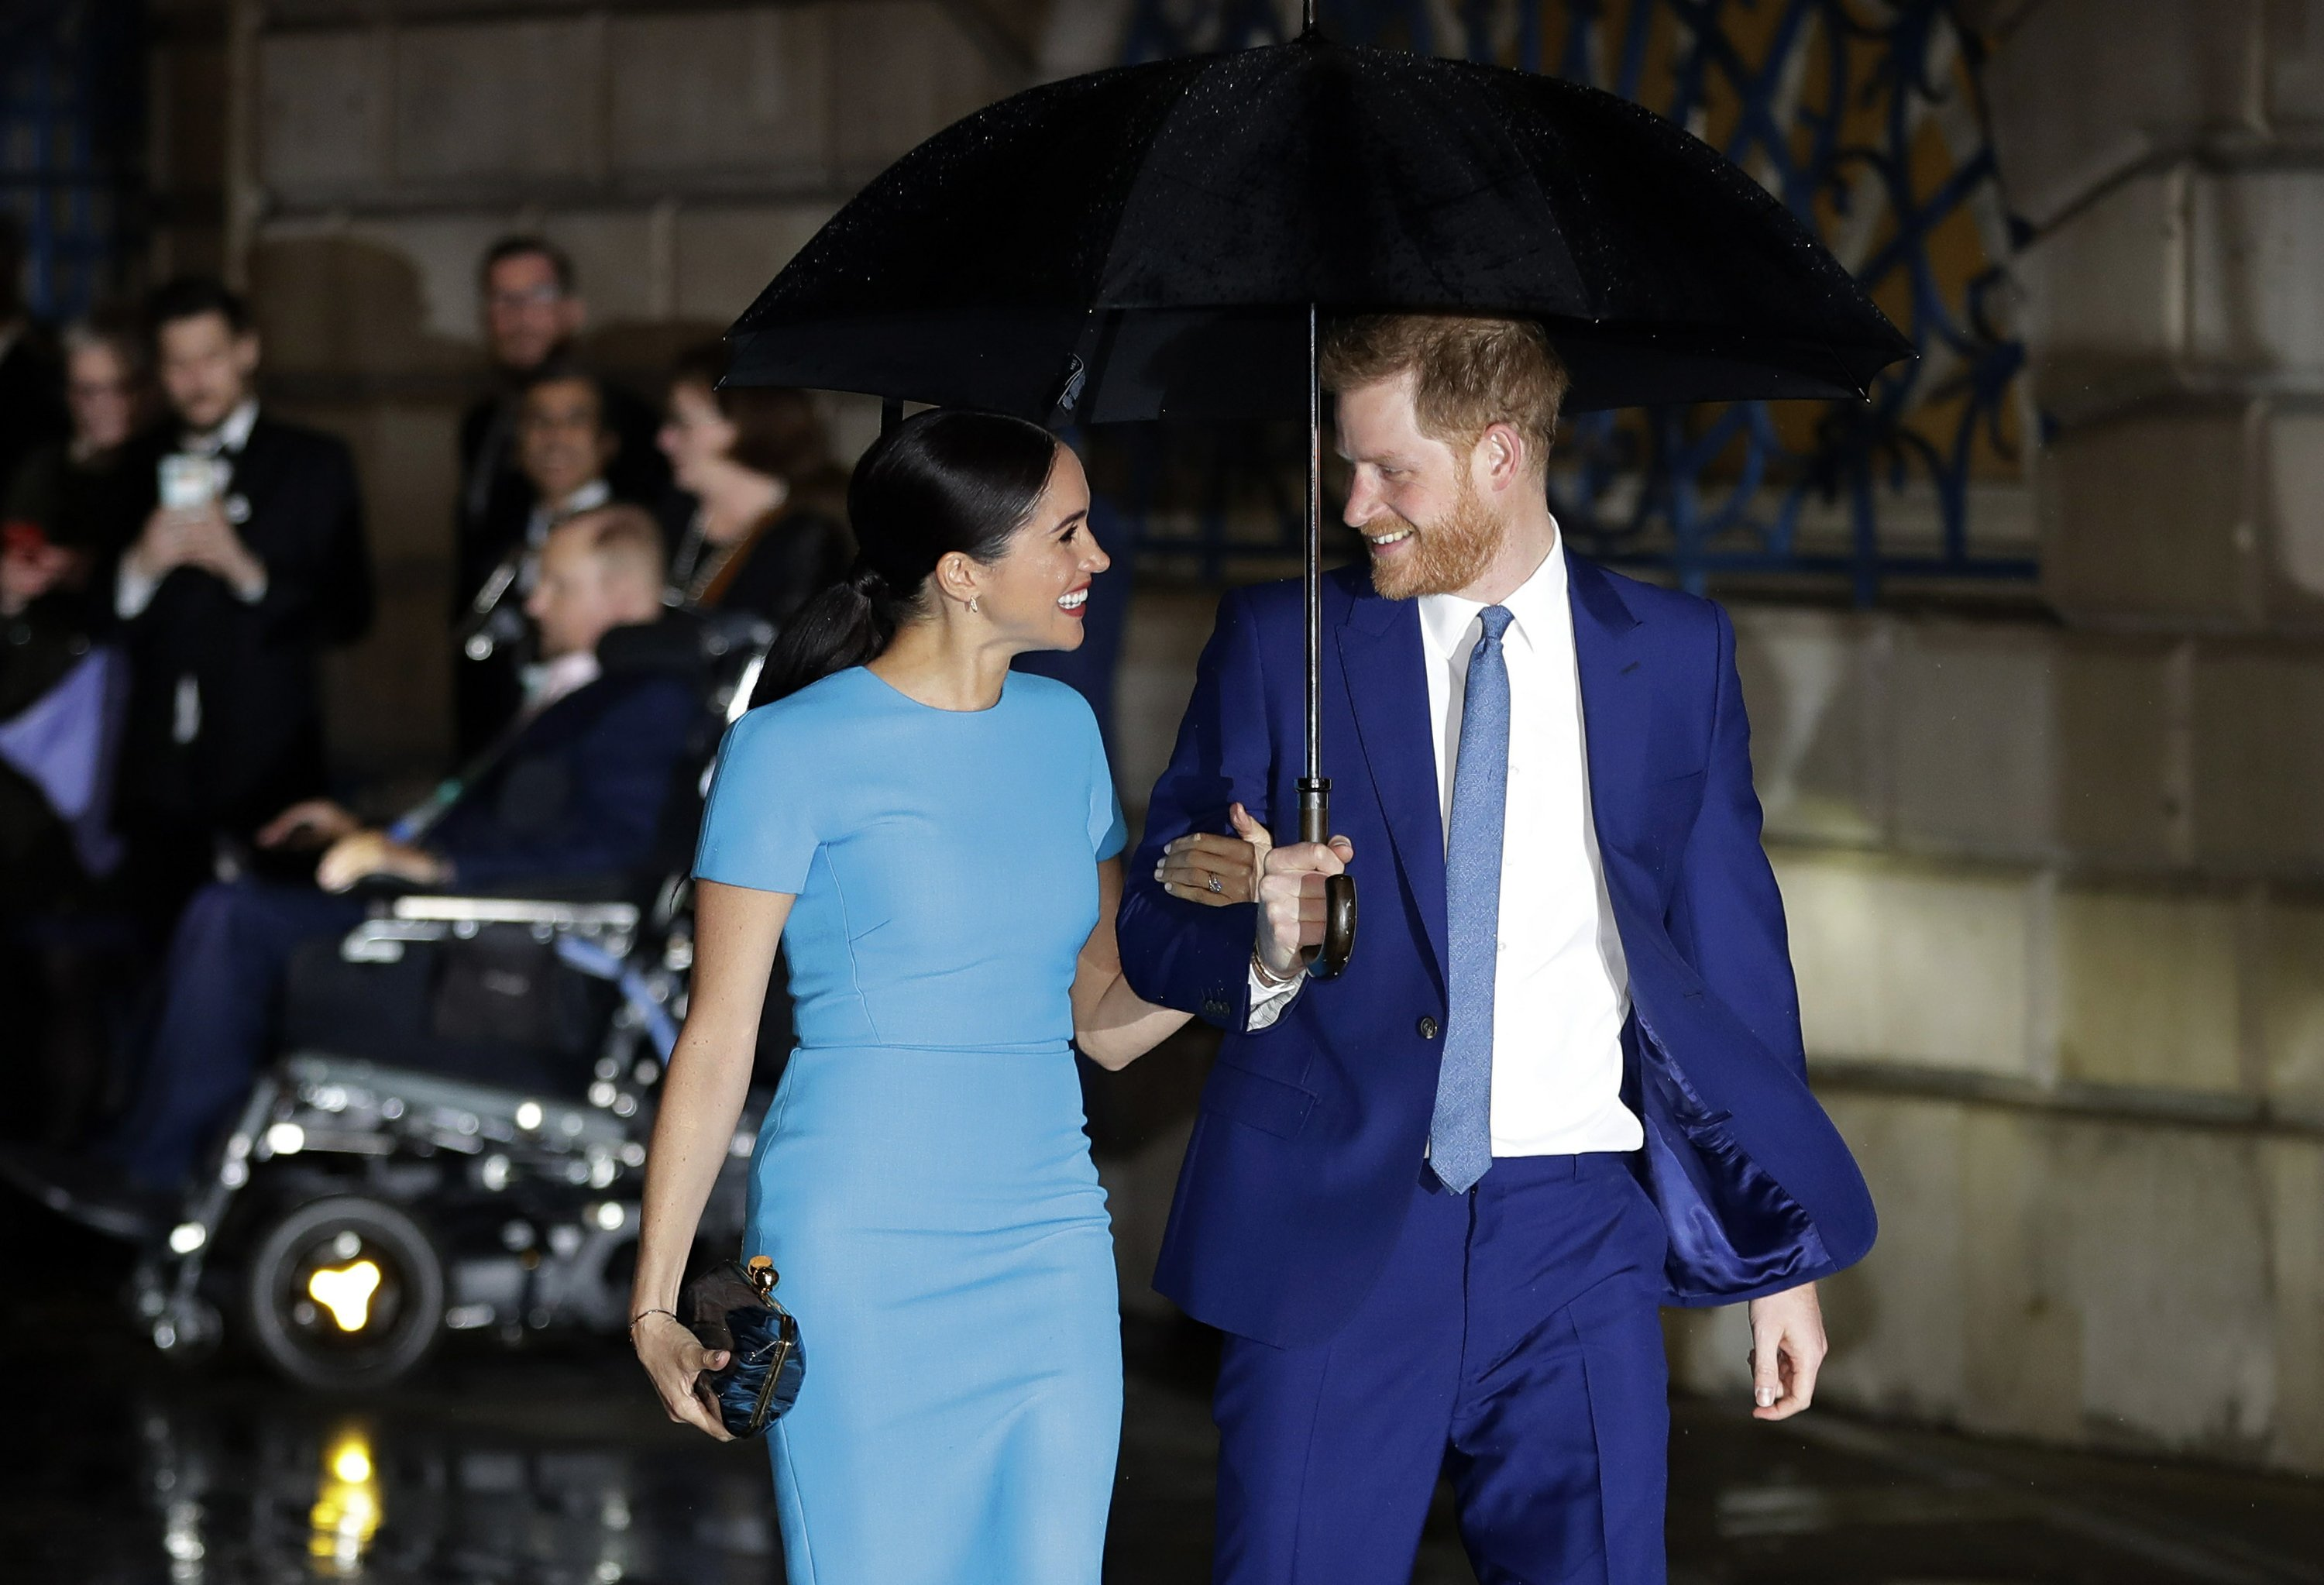 Duchess of Sussex expecting 2nd child, a sibling for Archie - The Associated Press